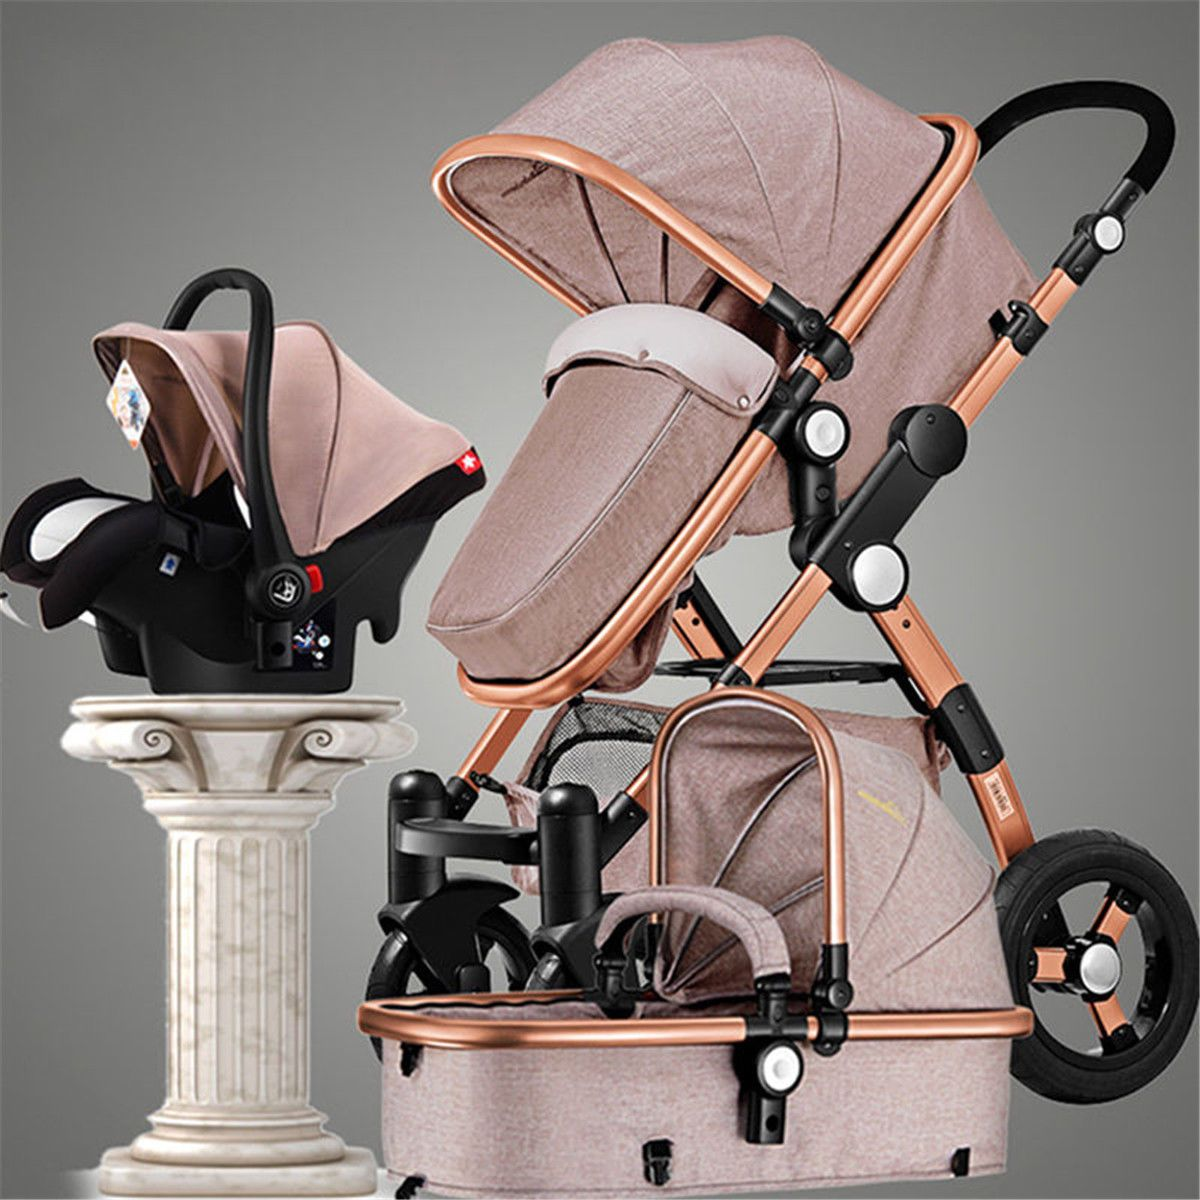 Luxury 3 in 1 Foldable Baby Stroller High View Pram